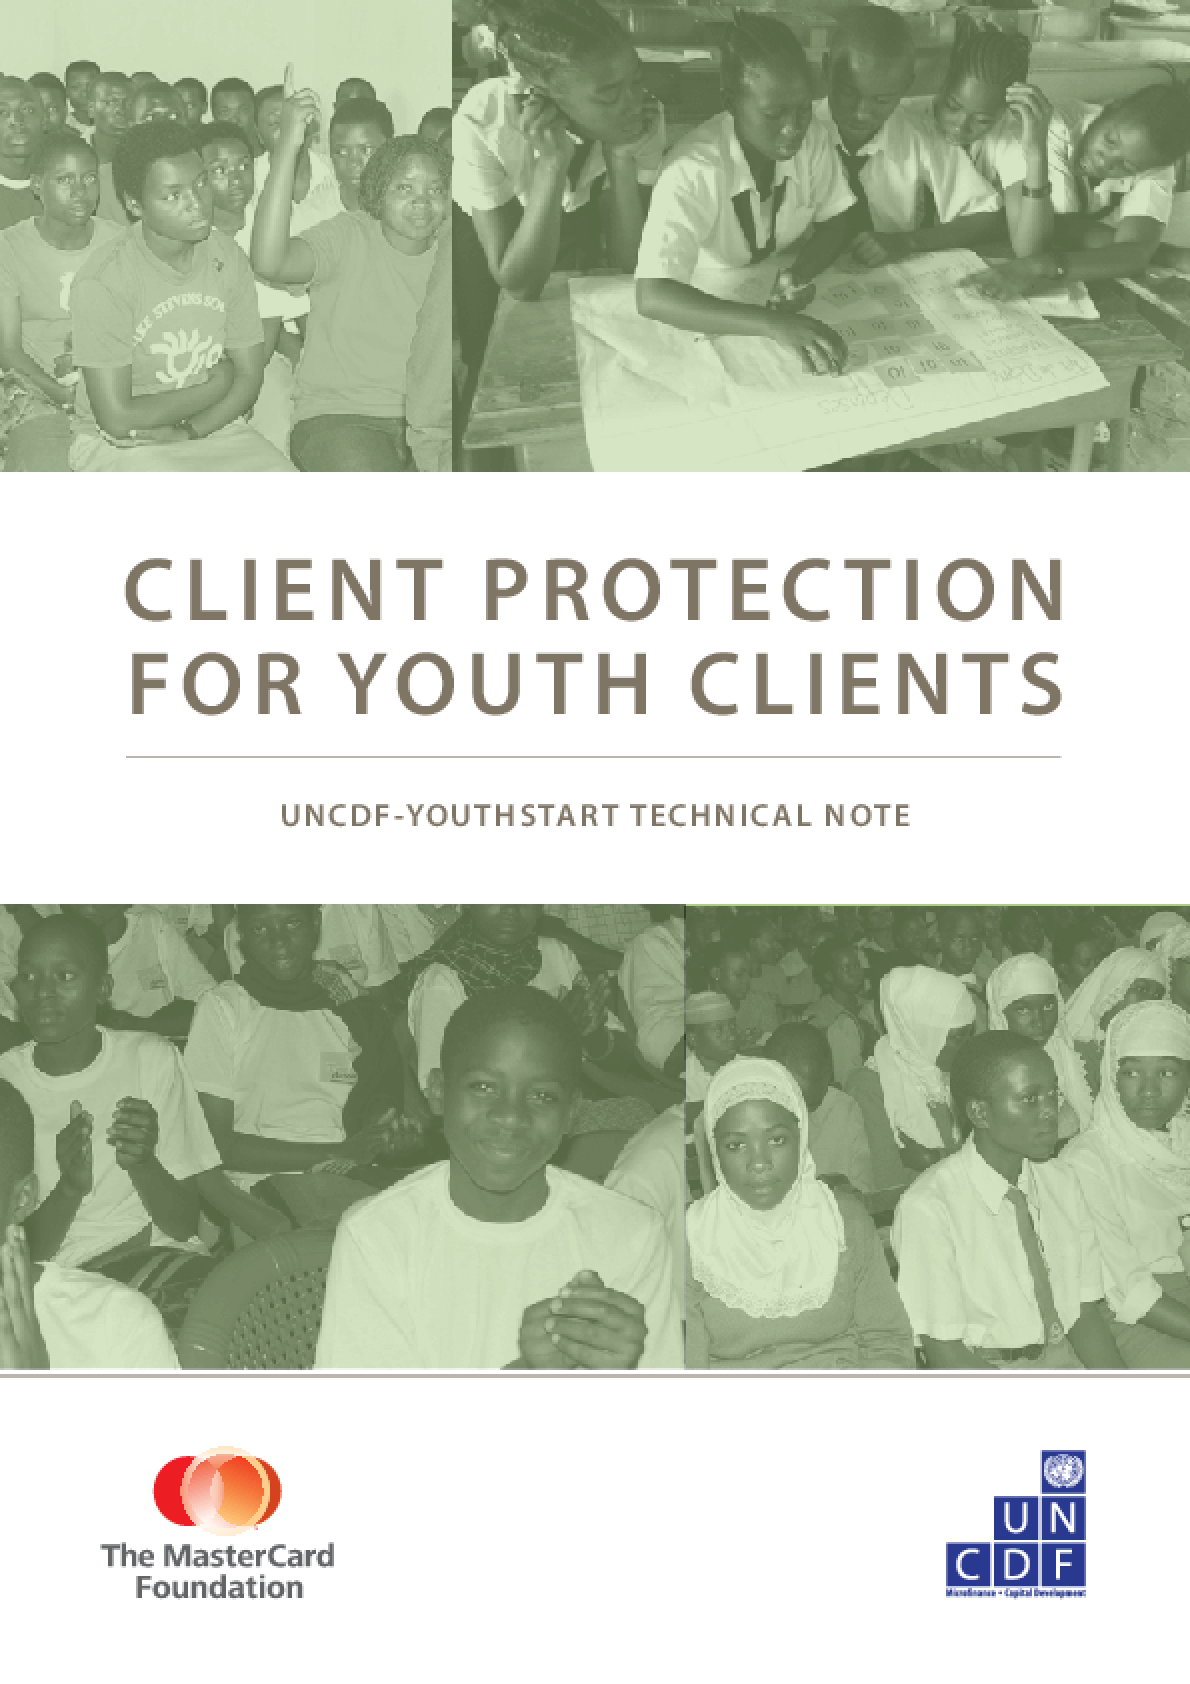 Client Protection for Youth Clients: UNCDF-YouthStart Technical Note